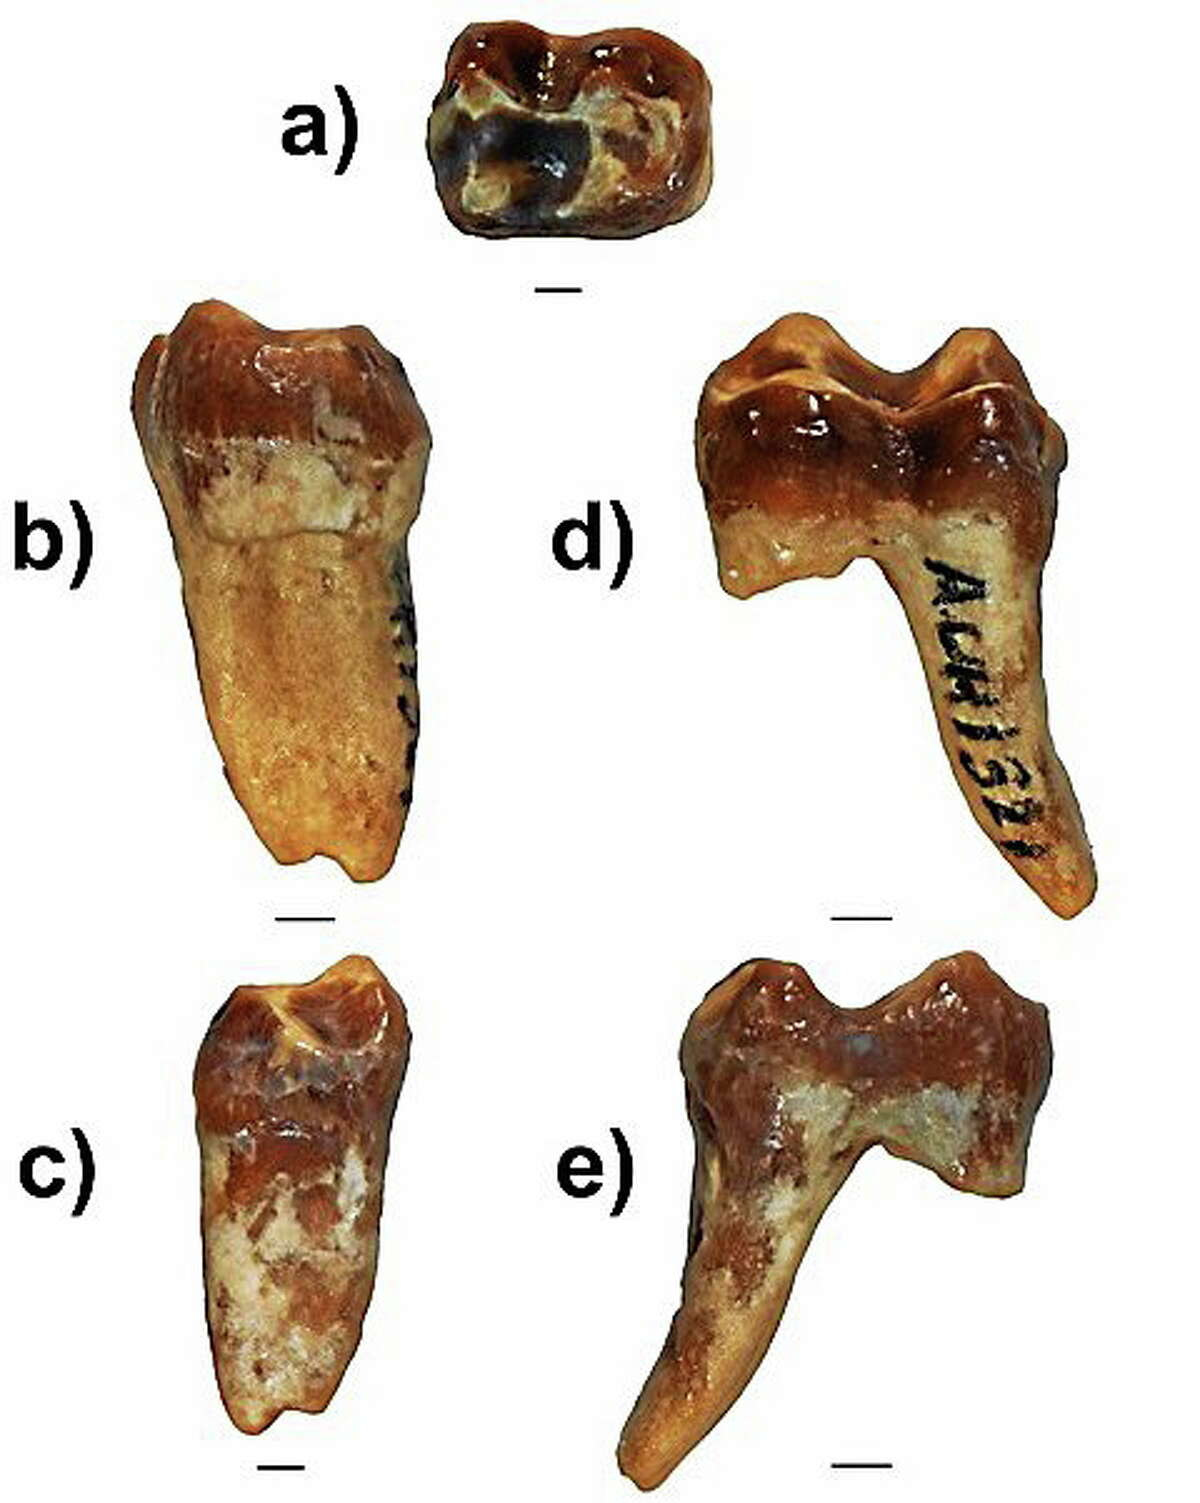 Views of a guenon monkey tooth found in 2009 in Abu Dhabi by Yale professor Andrew Hill and his team of anthropologists. Photo by Eric Lazo-Wasem.